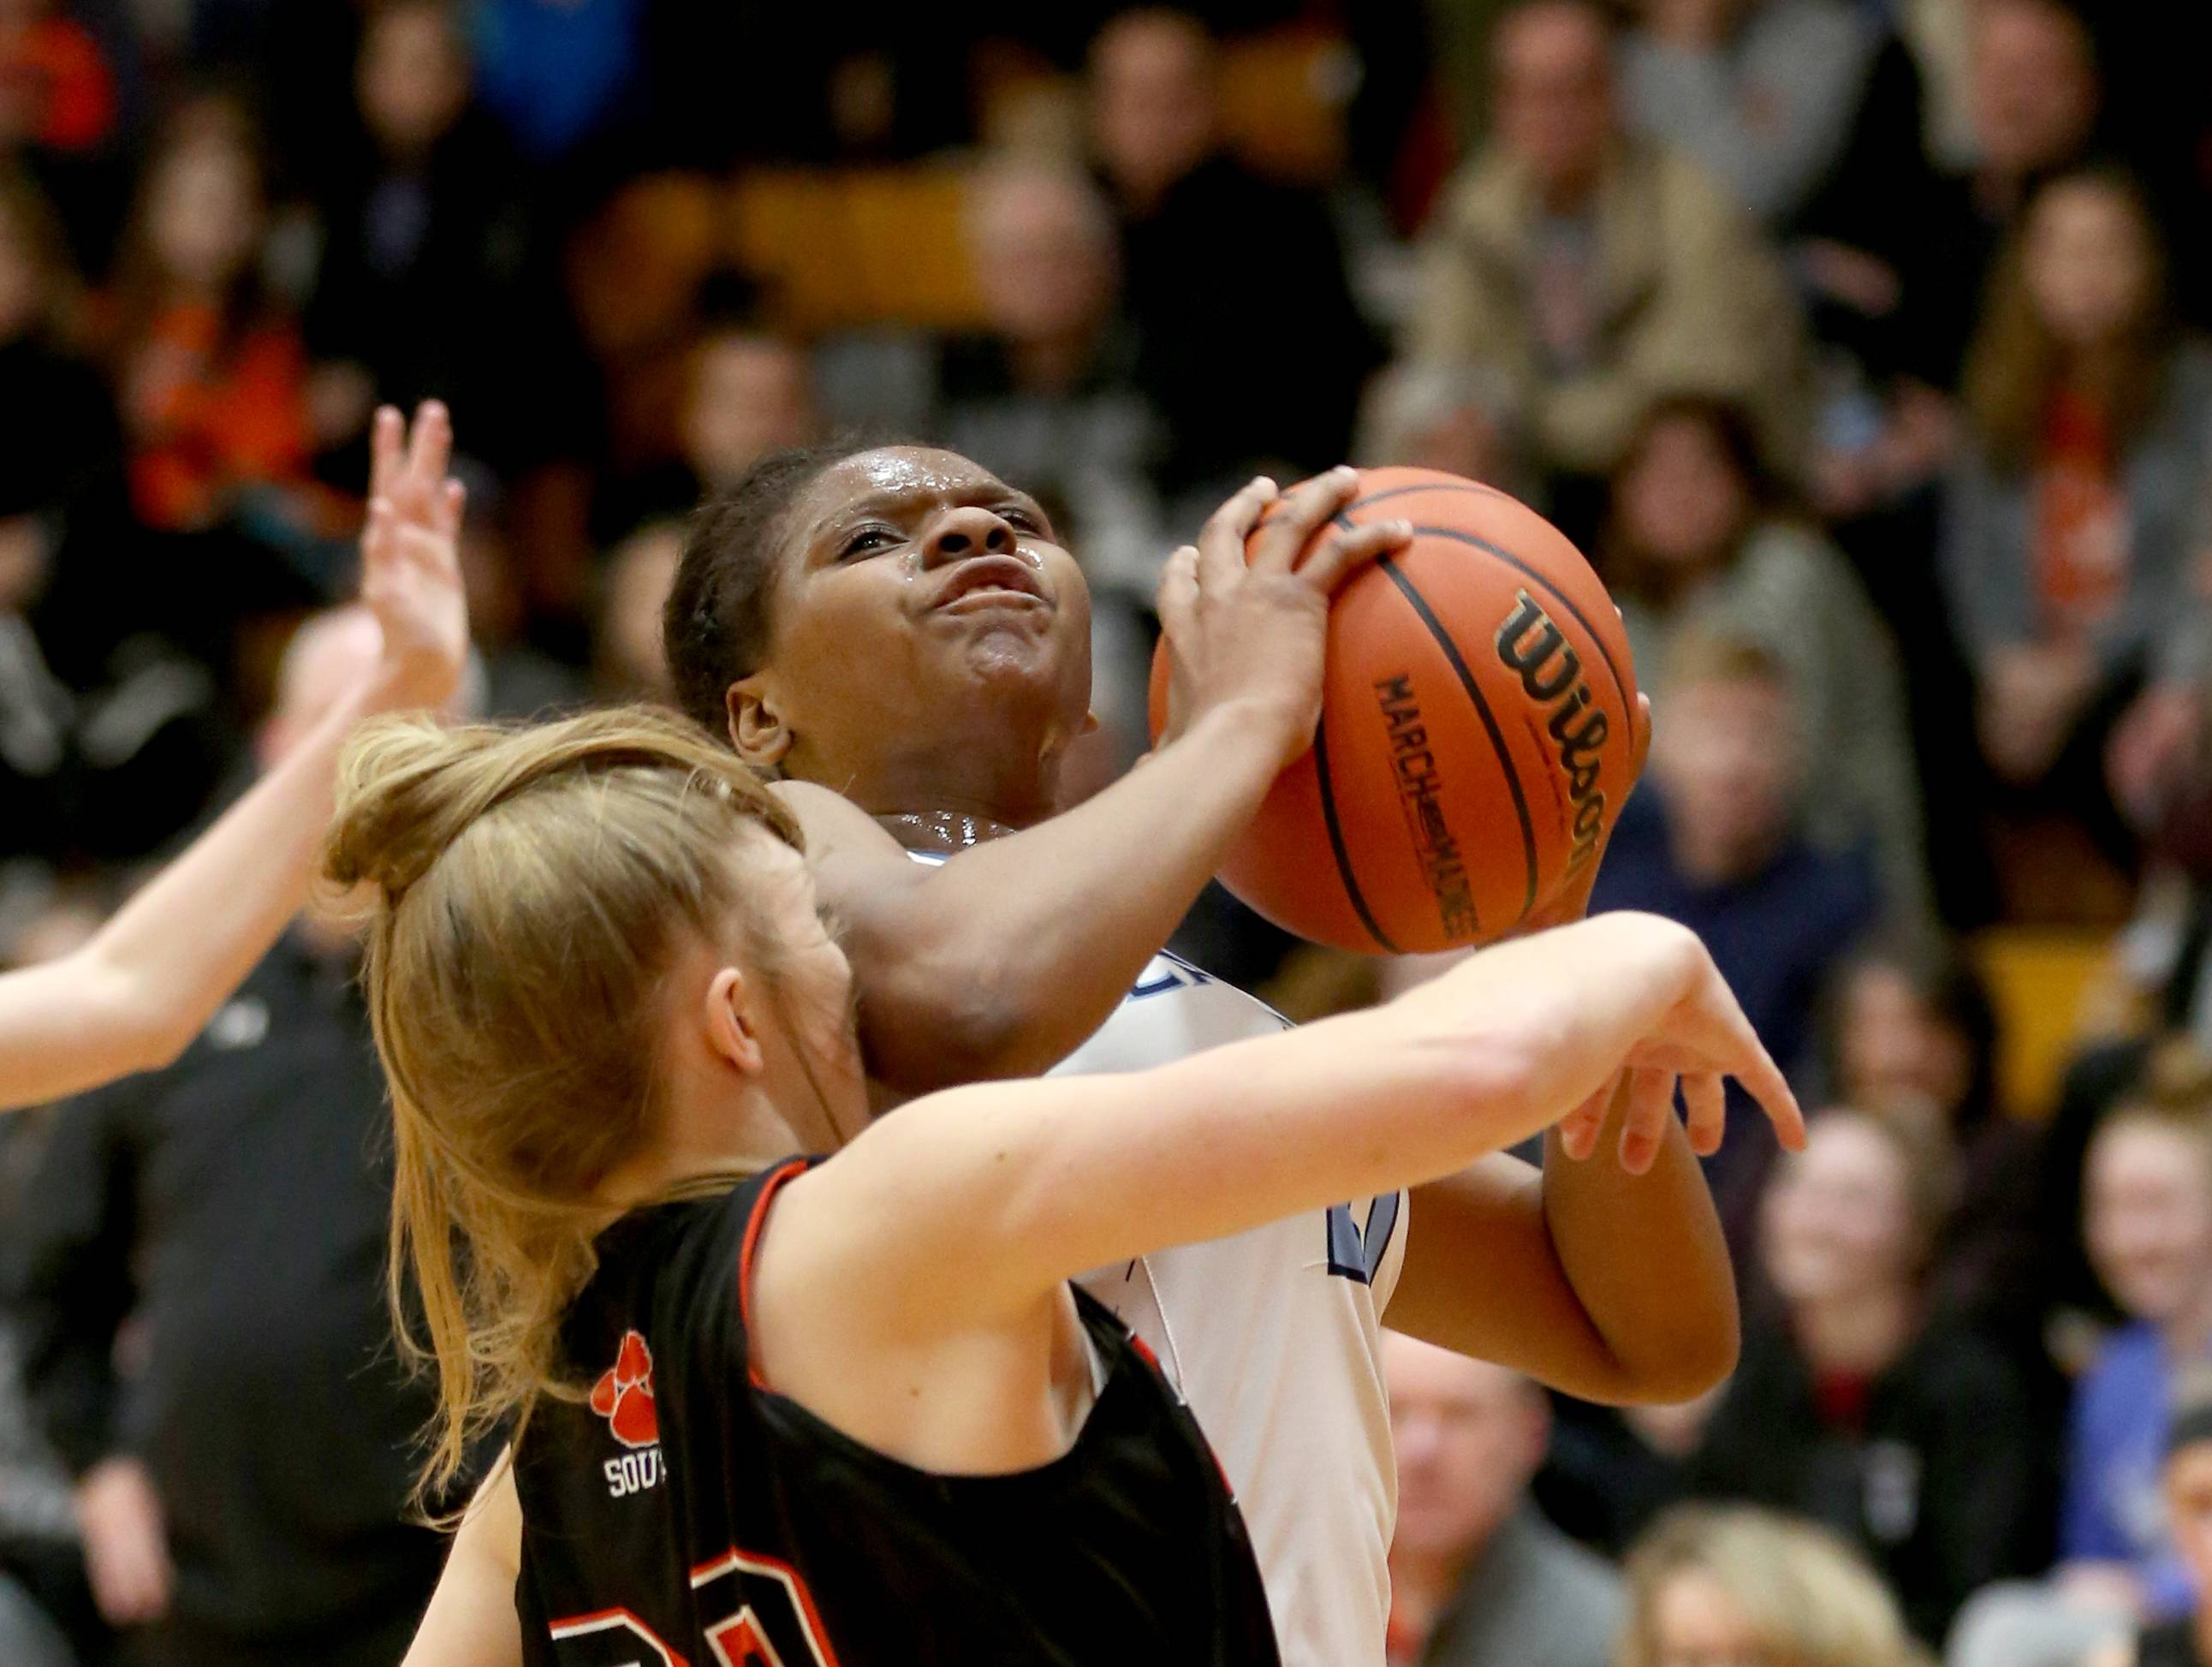 Lake Park's Darrione Rogers moves with the ball against Wheaton Warrenville South during sectional semifinal girls basketball action at Batavia Monday night.